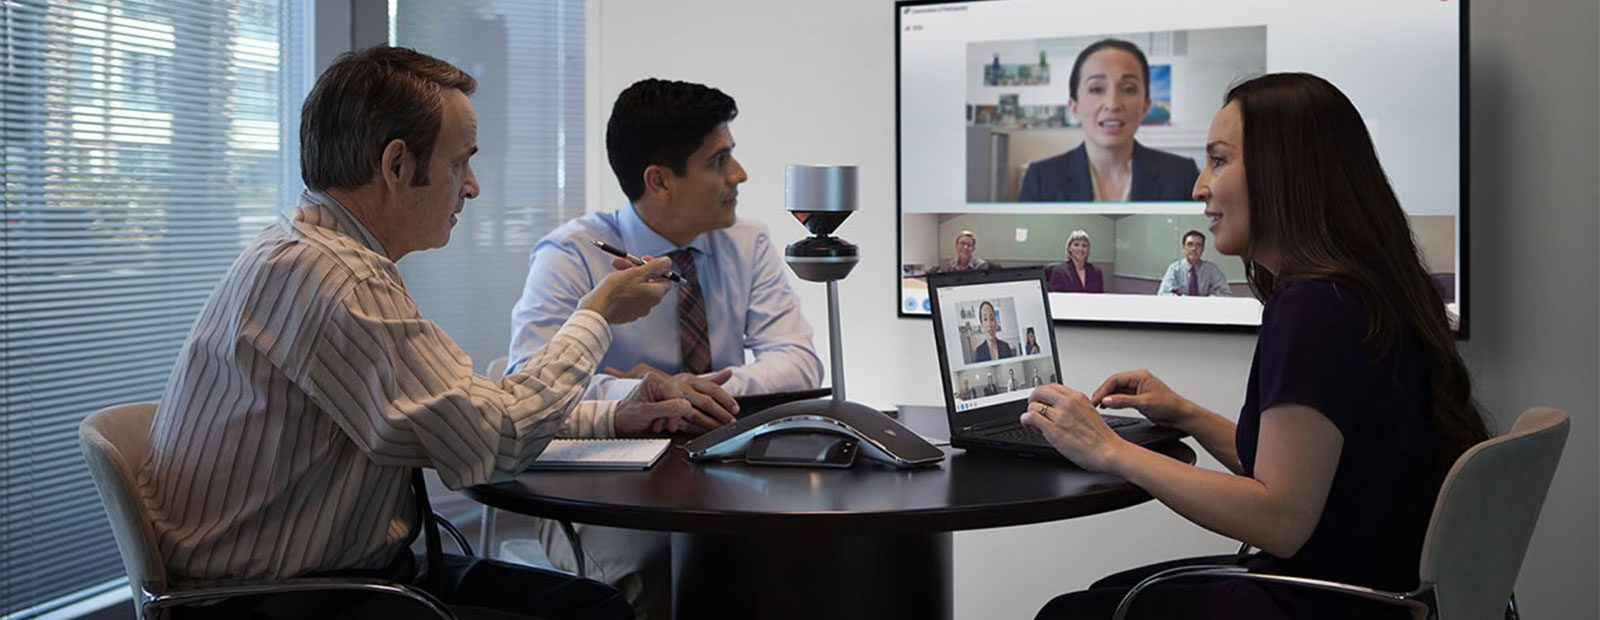 Video Conference Spaces Workspace gallery image